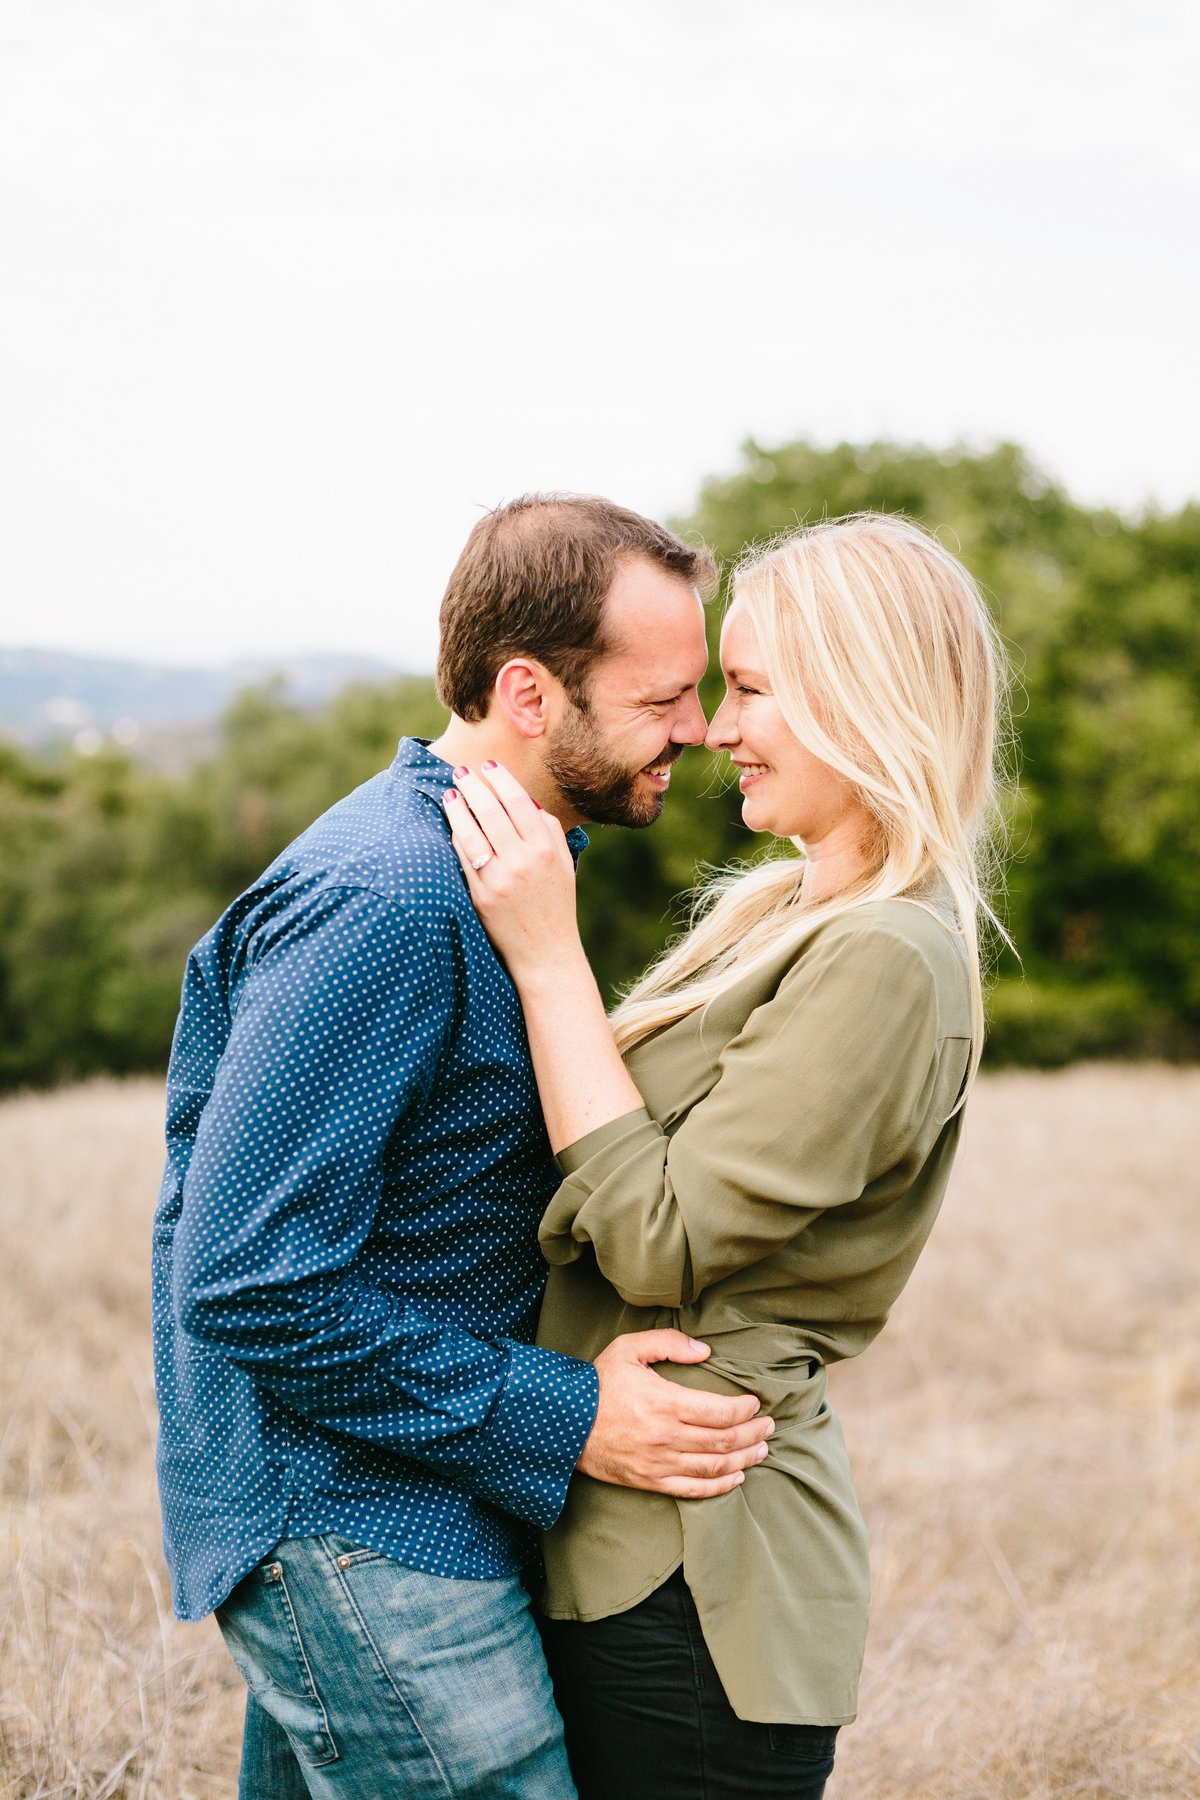 Best California Engagement Photographer_Jodee Debes Photography_094